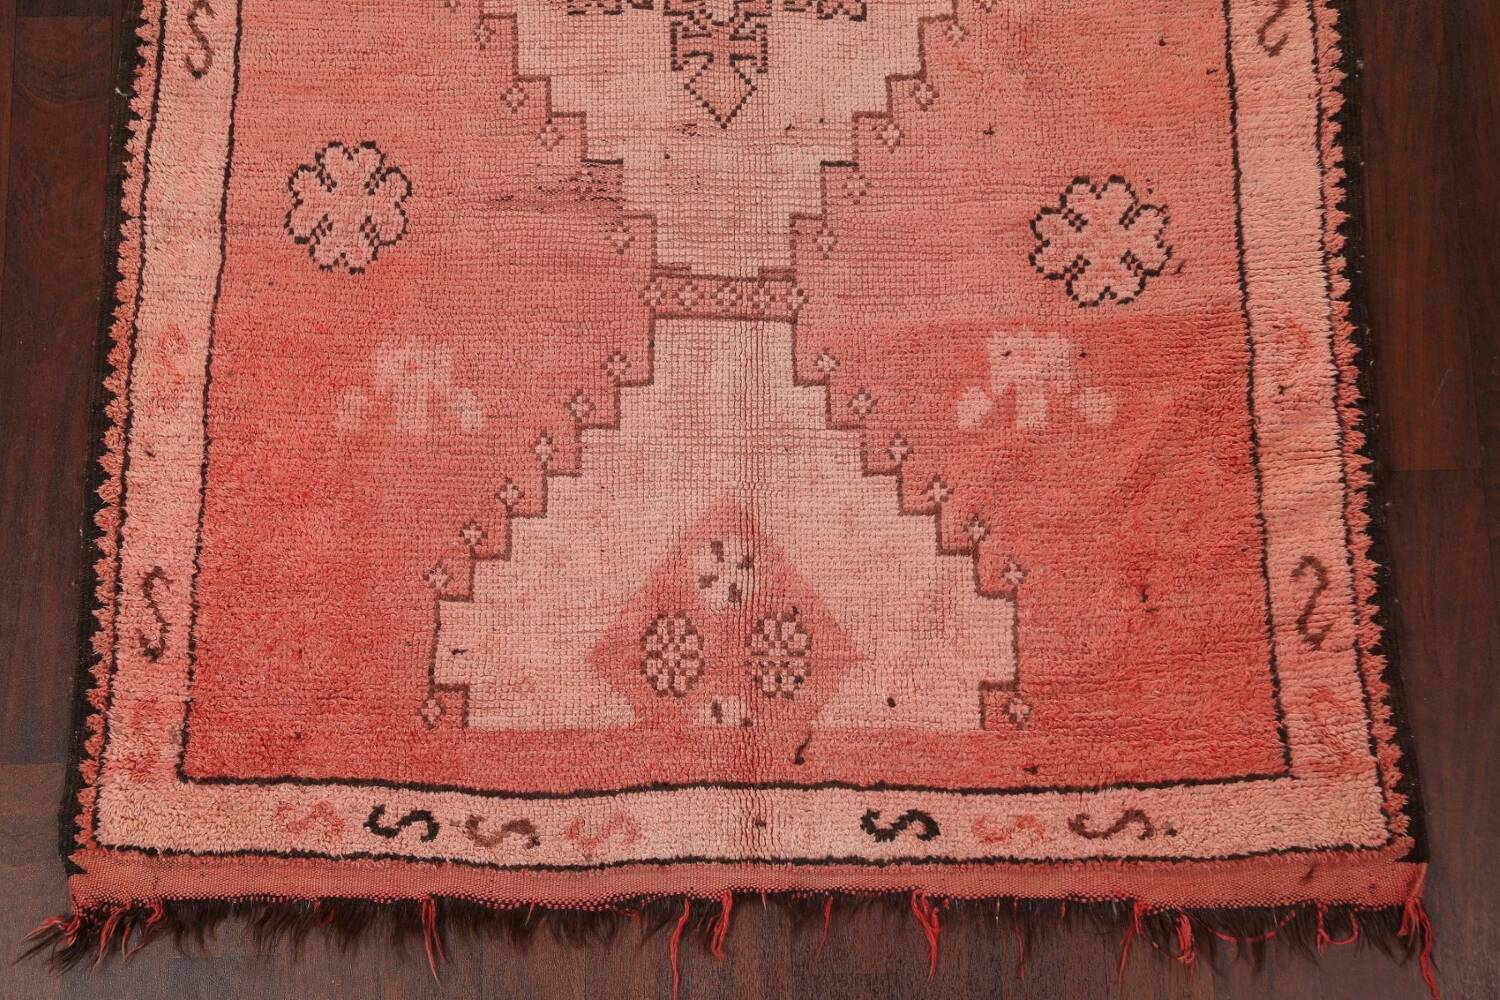 Antique Moroccan Wool Area Rug 5x12 image 5